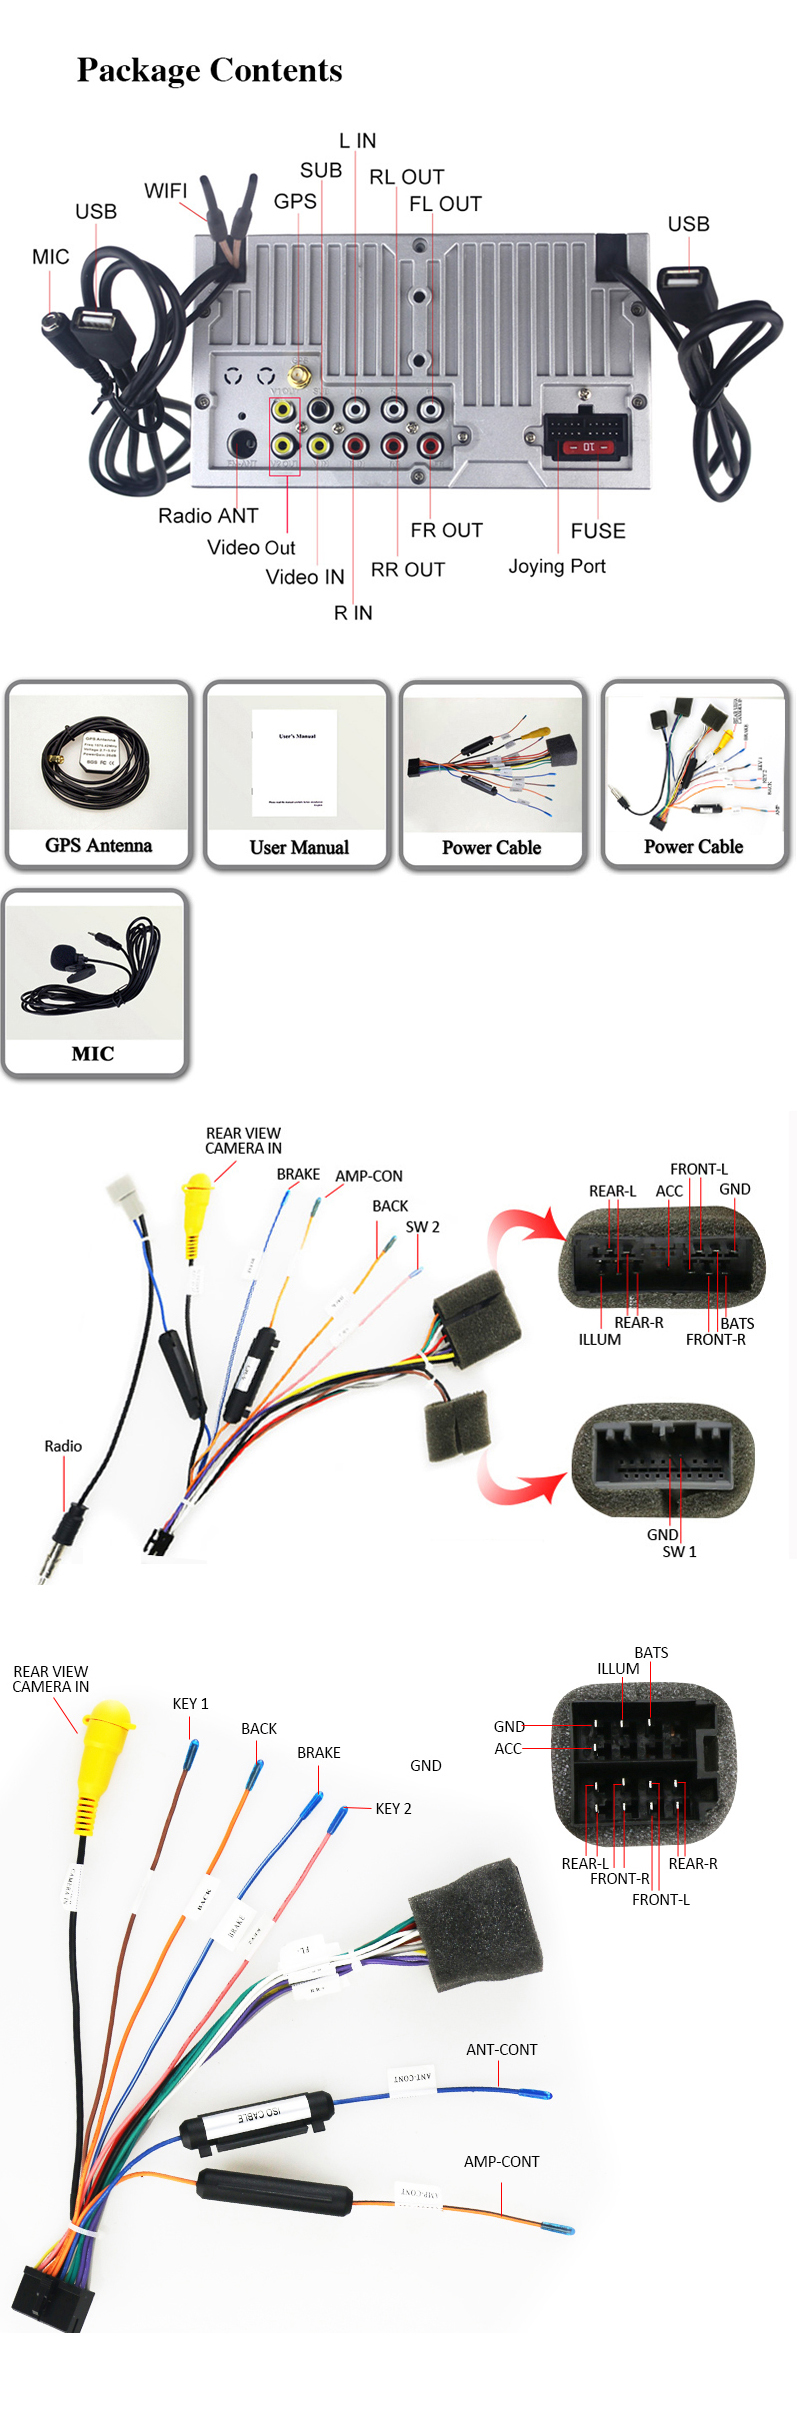 Coika Android 80 System Car Multimedia Stereo For Honda Civic 2006 Din Cd Canbus Wiring Fitting Kit Fascia Stalk Ebay Do I Need To Pay Custom Duties